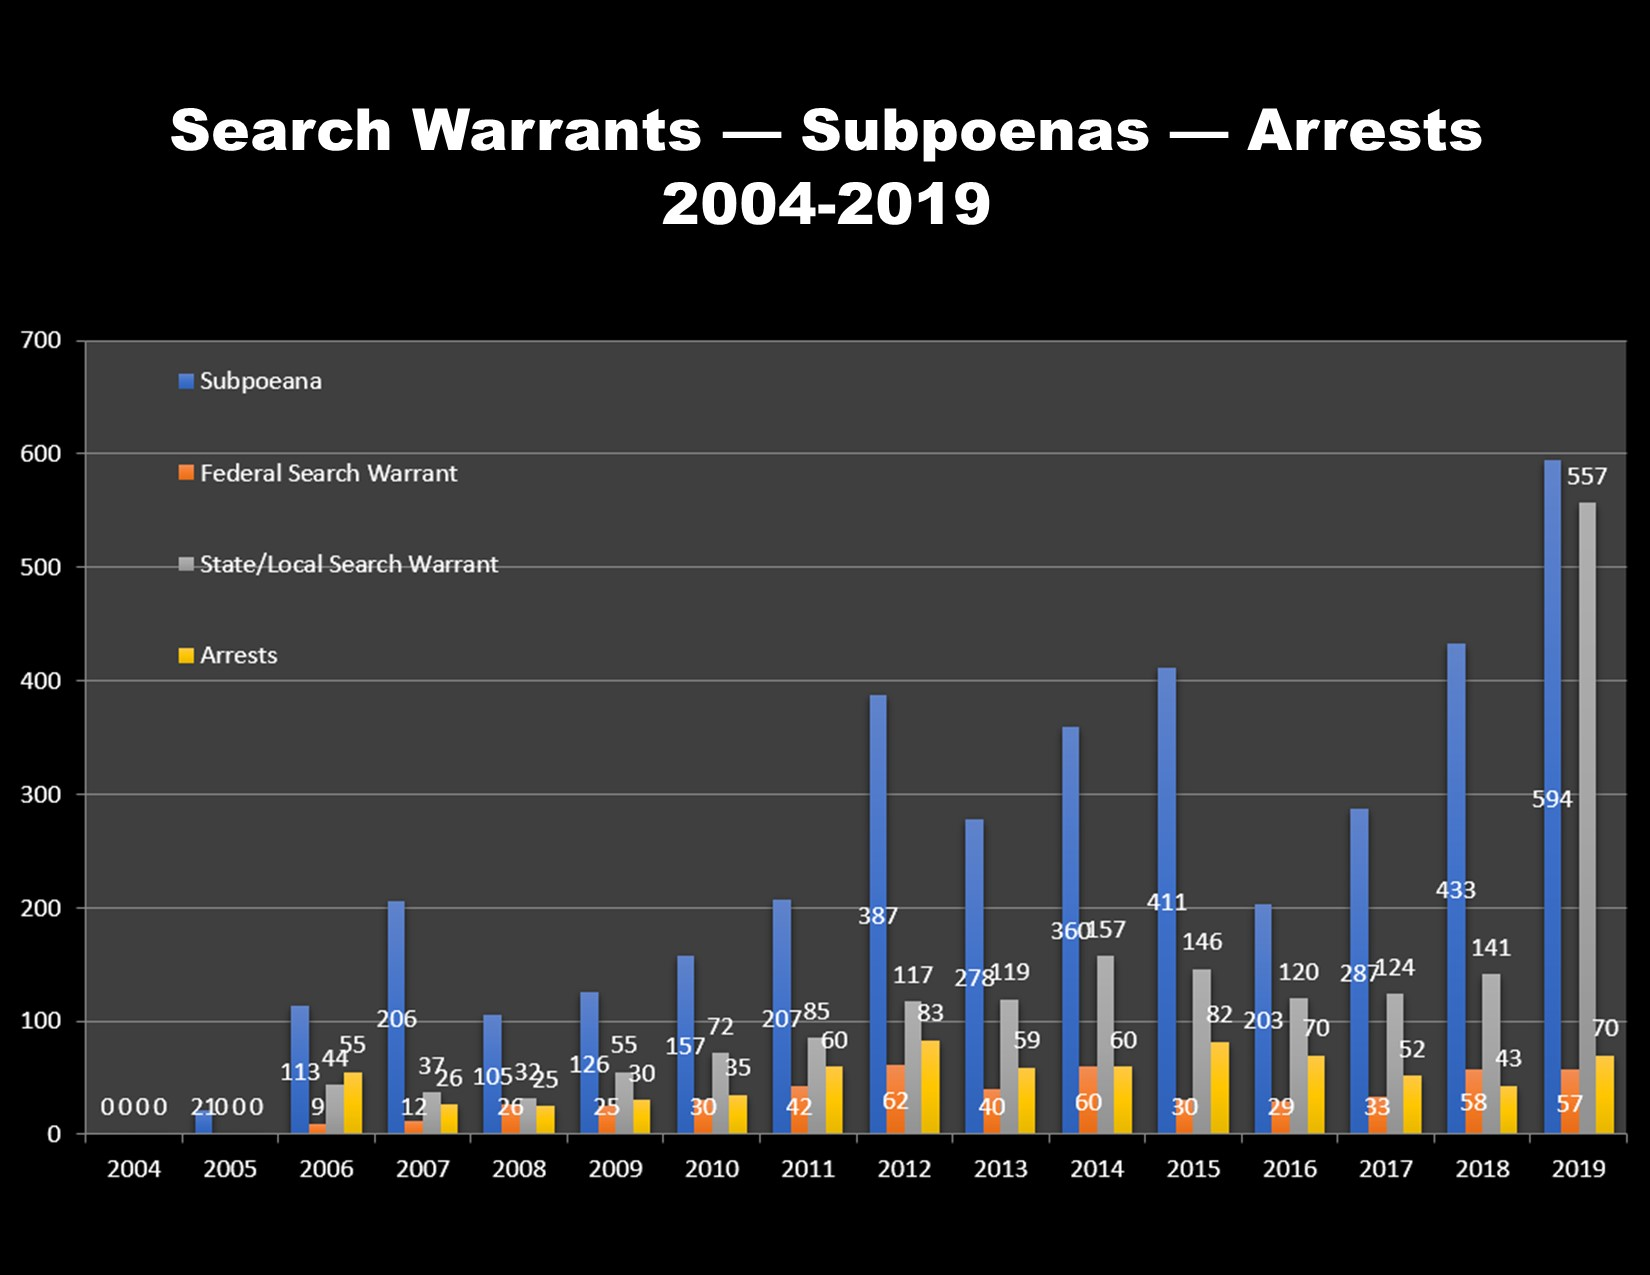 Link to search warrants, subpoenas and arrests